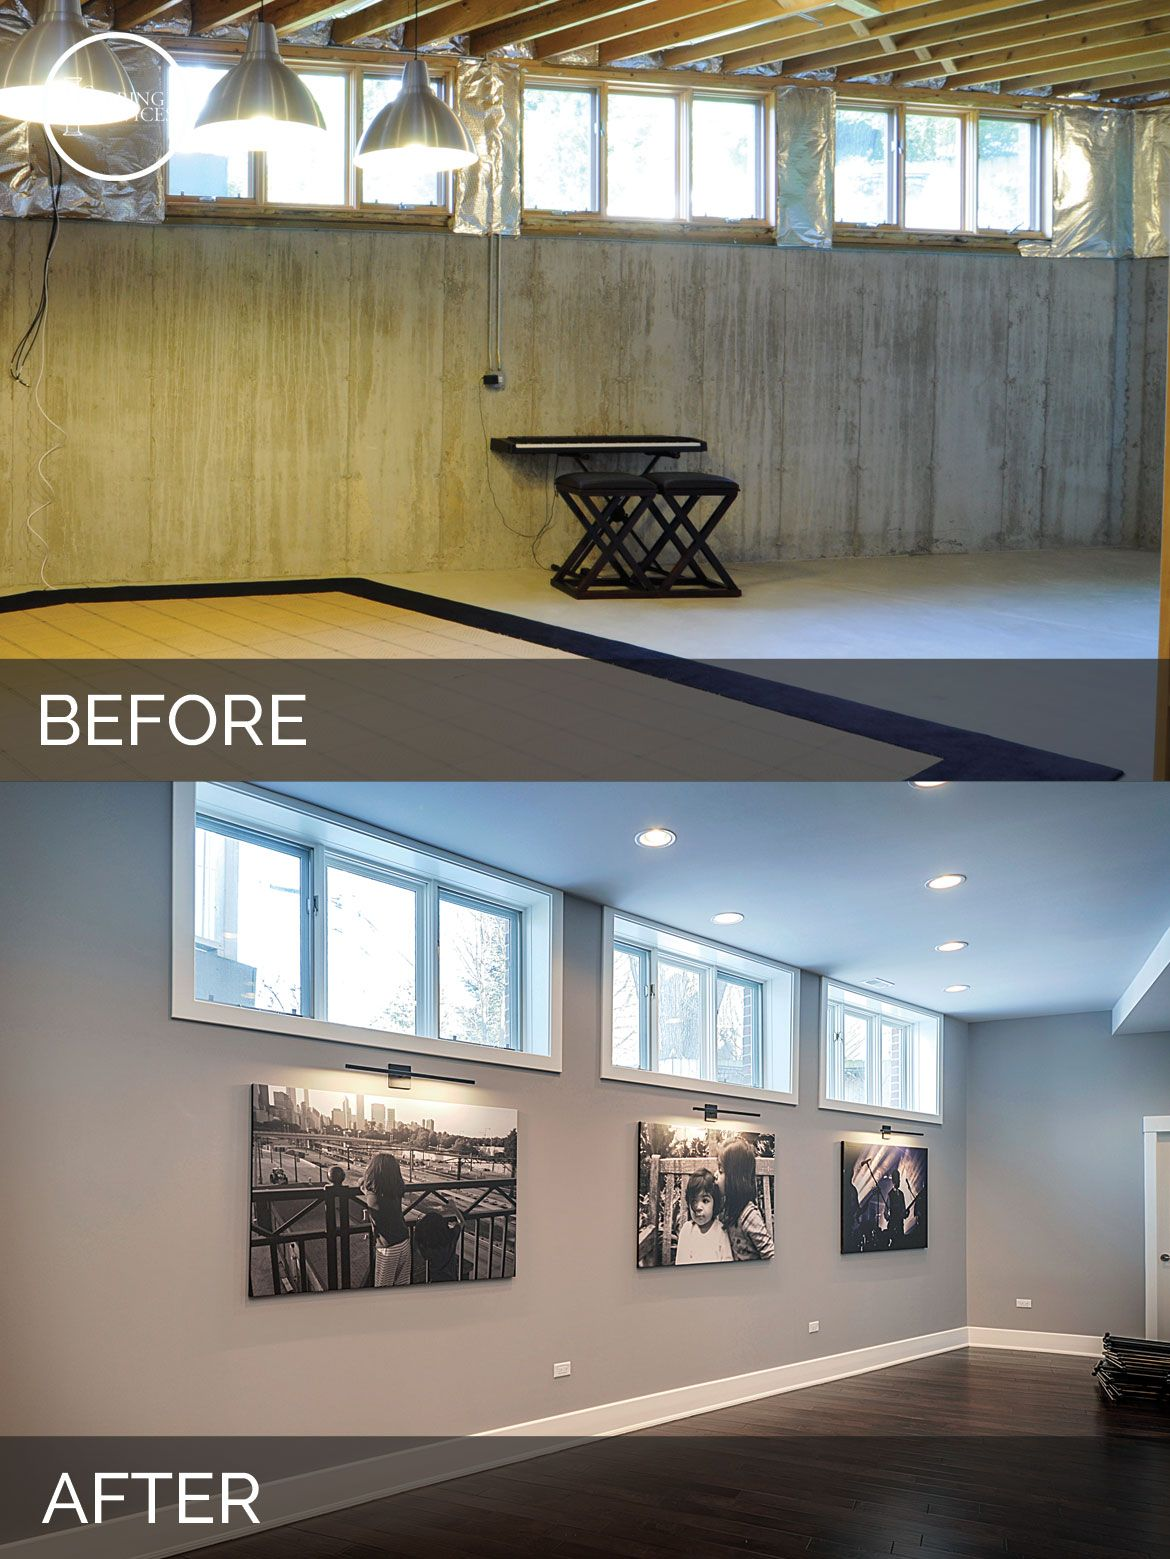 Before And After Diy Kitchen Renovation: Sidd & Nisha's Basement Before & After Pictures